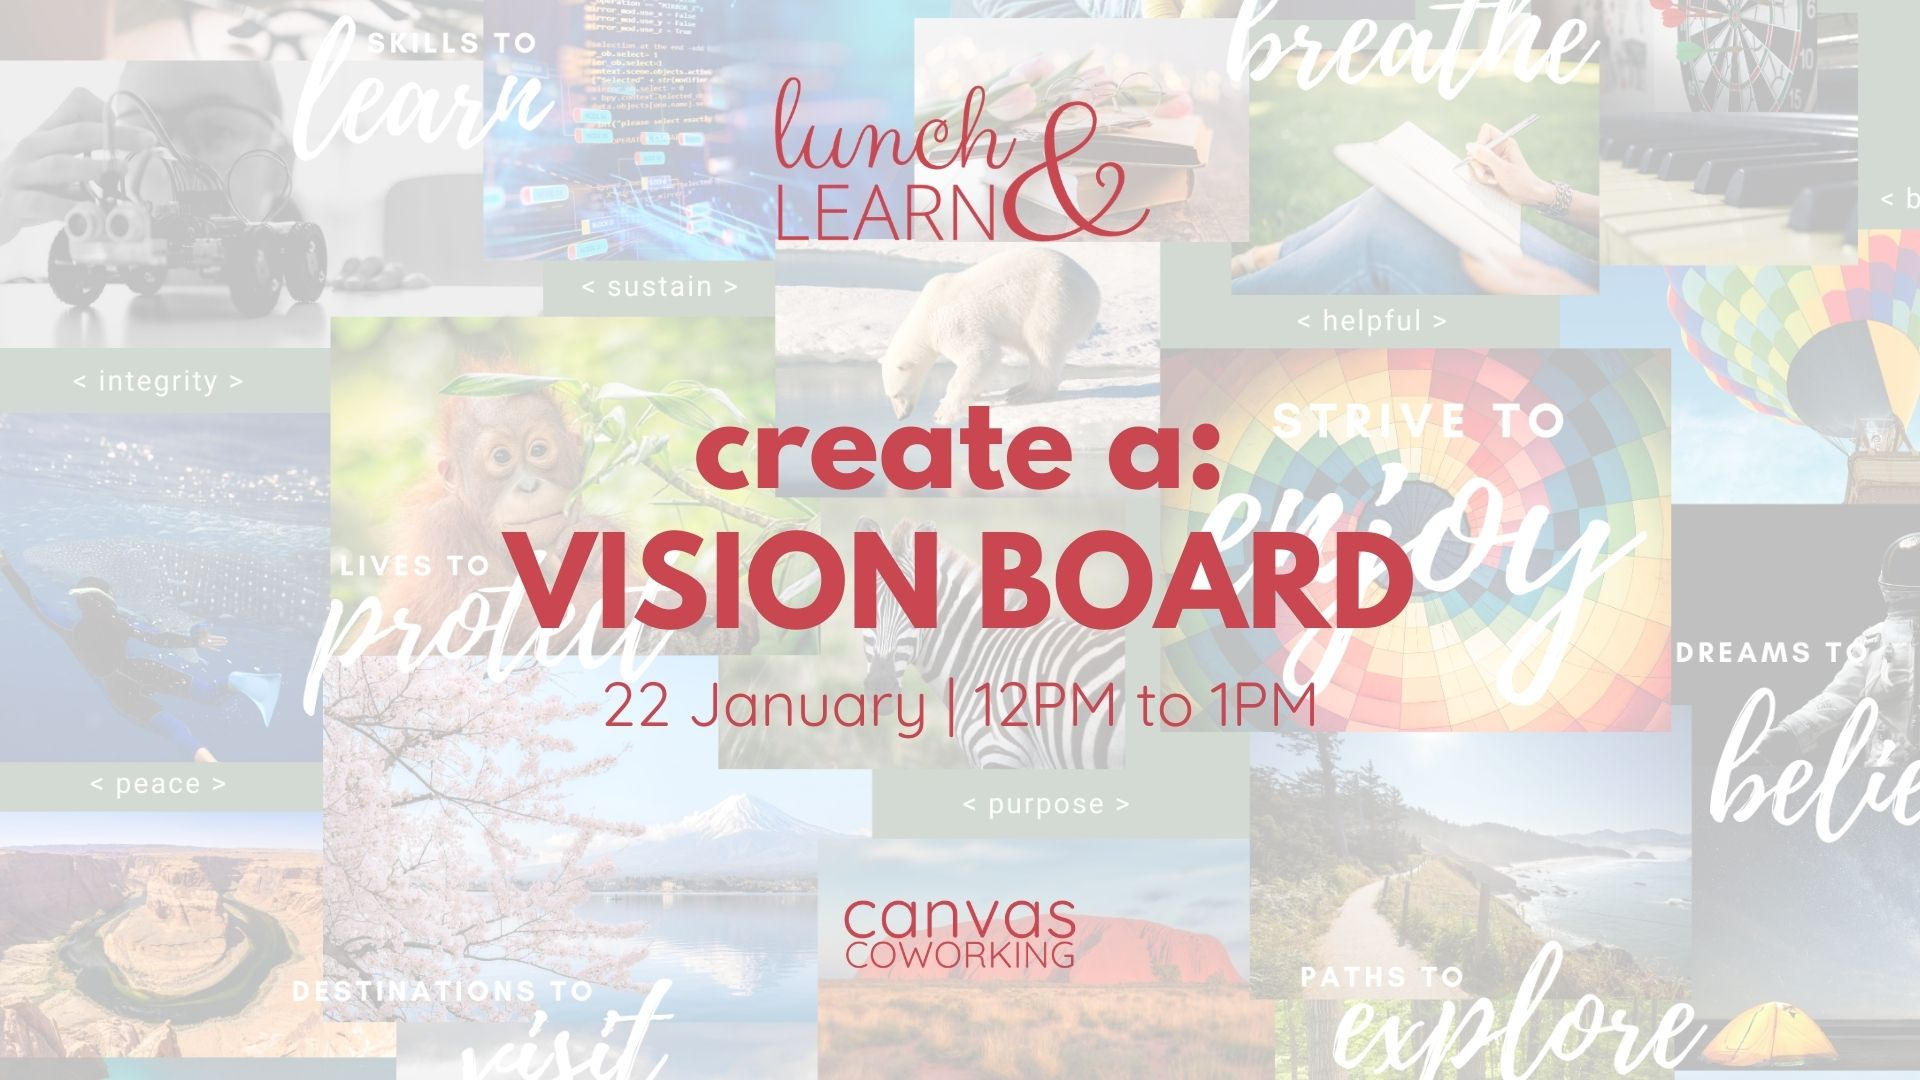 Lunch & Learn - 22 Jan 2021 - Create a Vision Board at Canvas Coworking